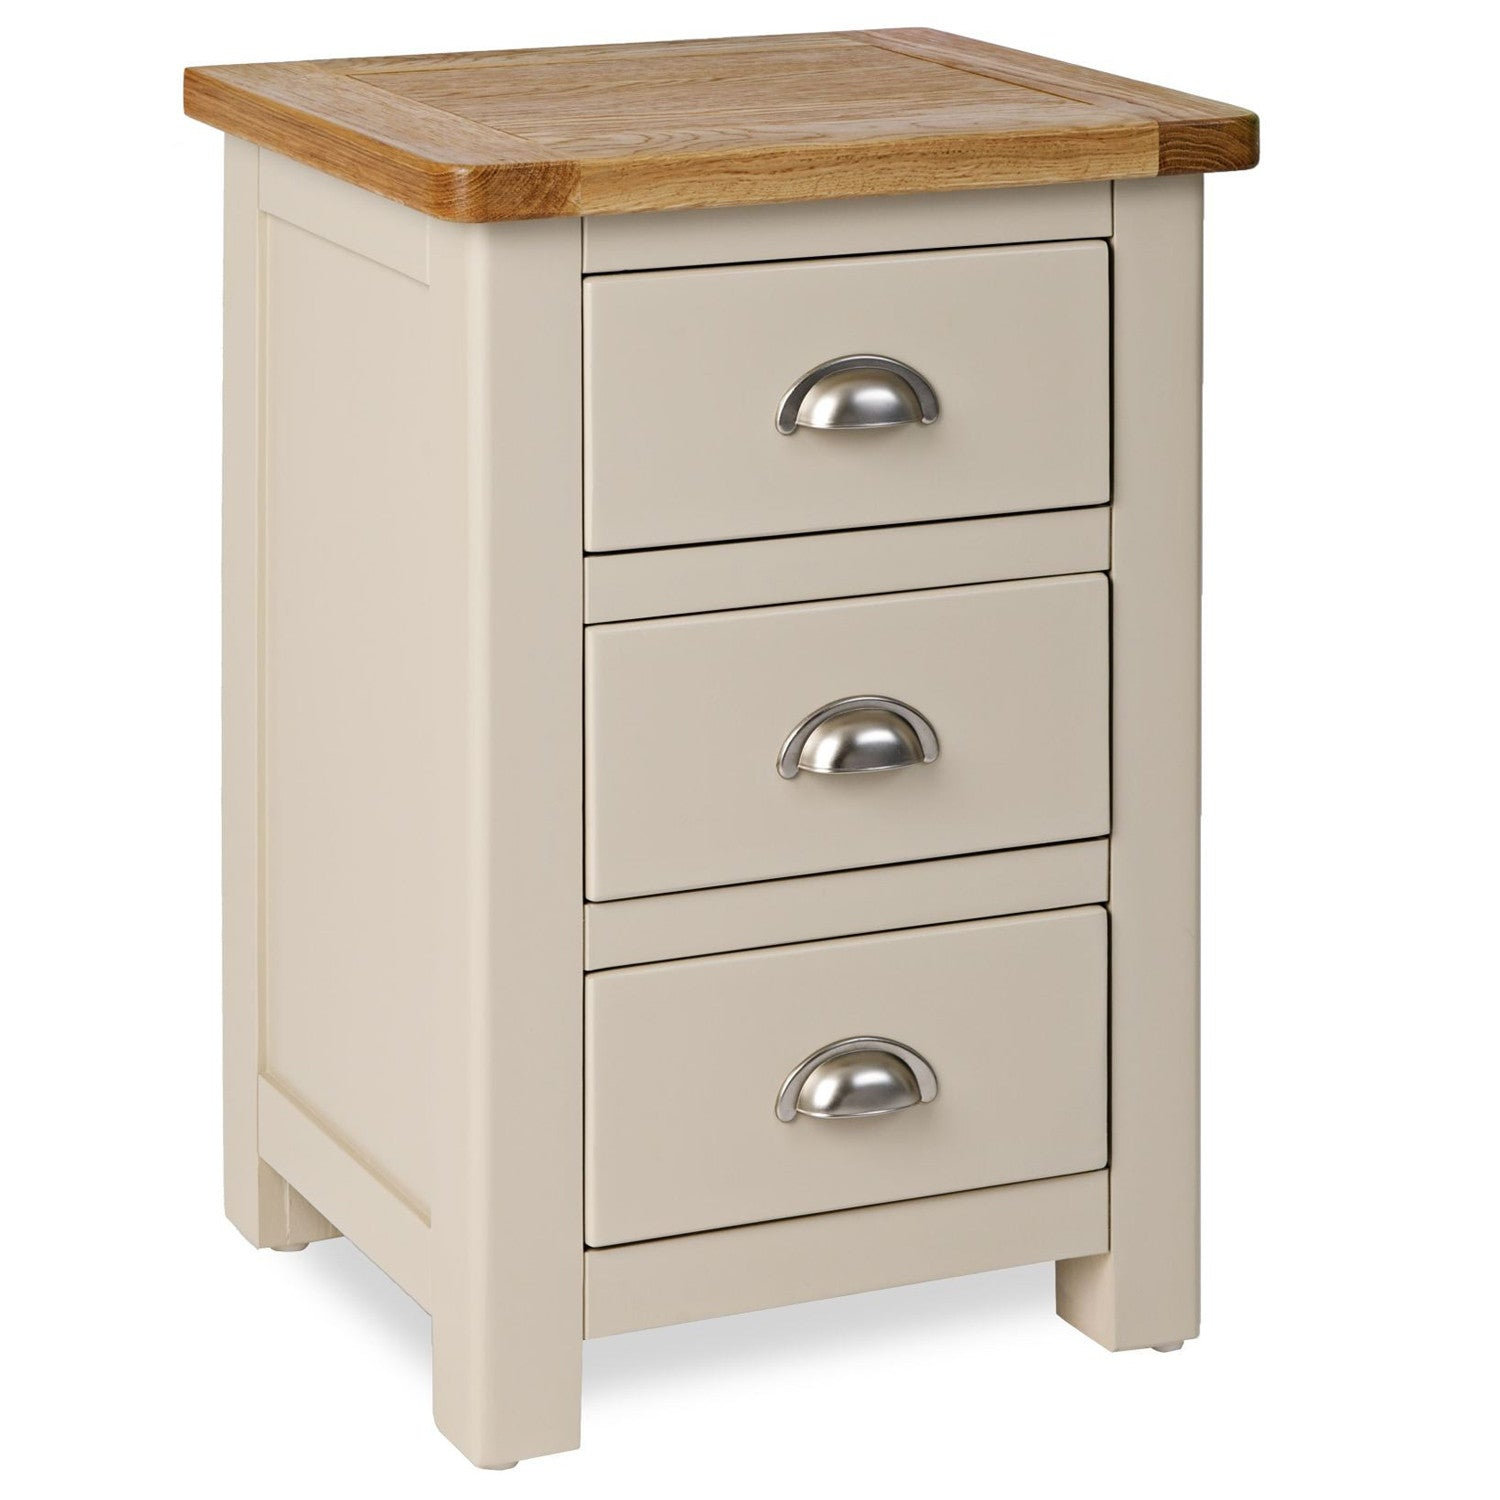 Portland Oak and Painted 2+3 Chest of Drawers | Portland Furniture